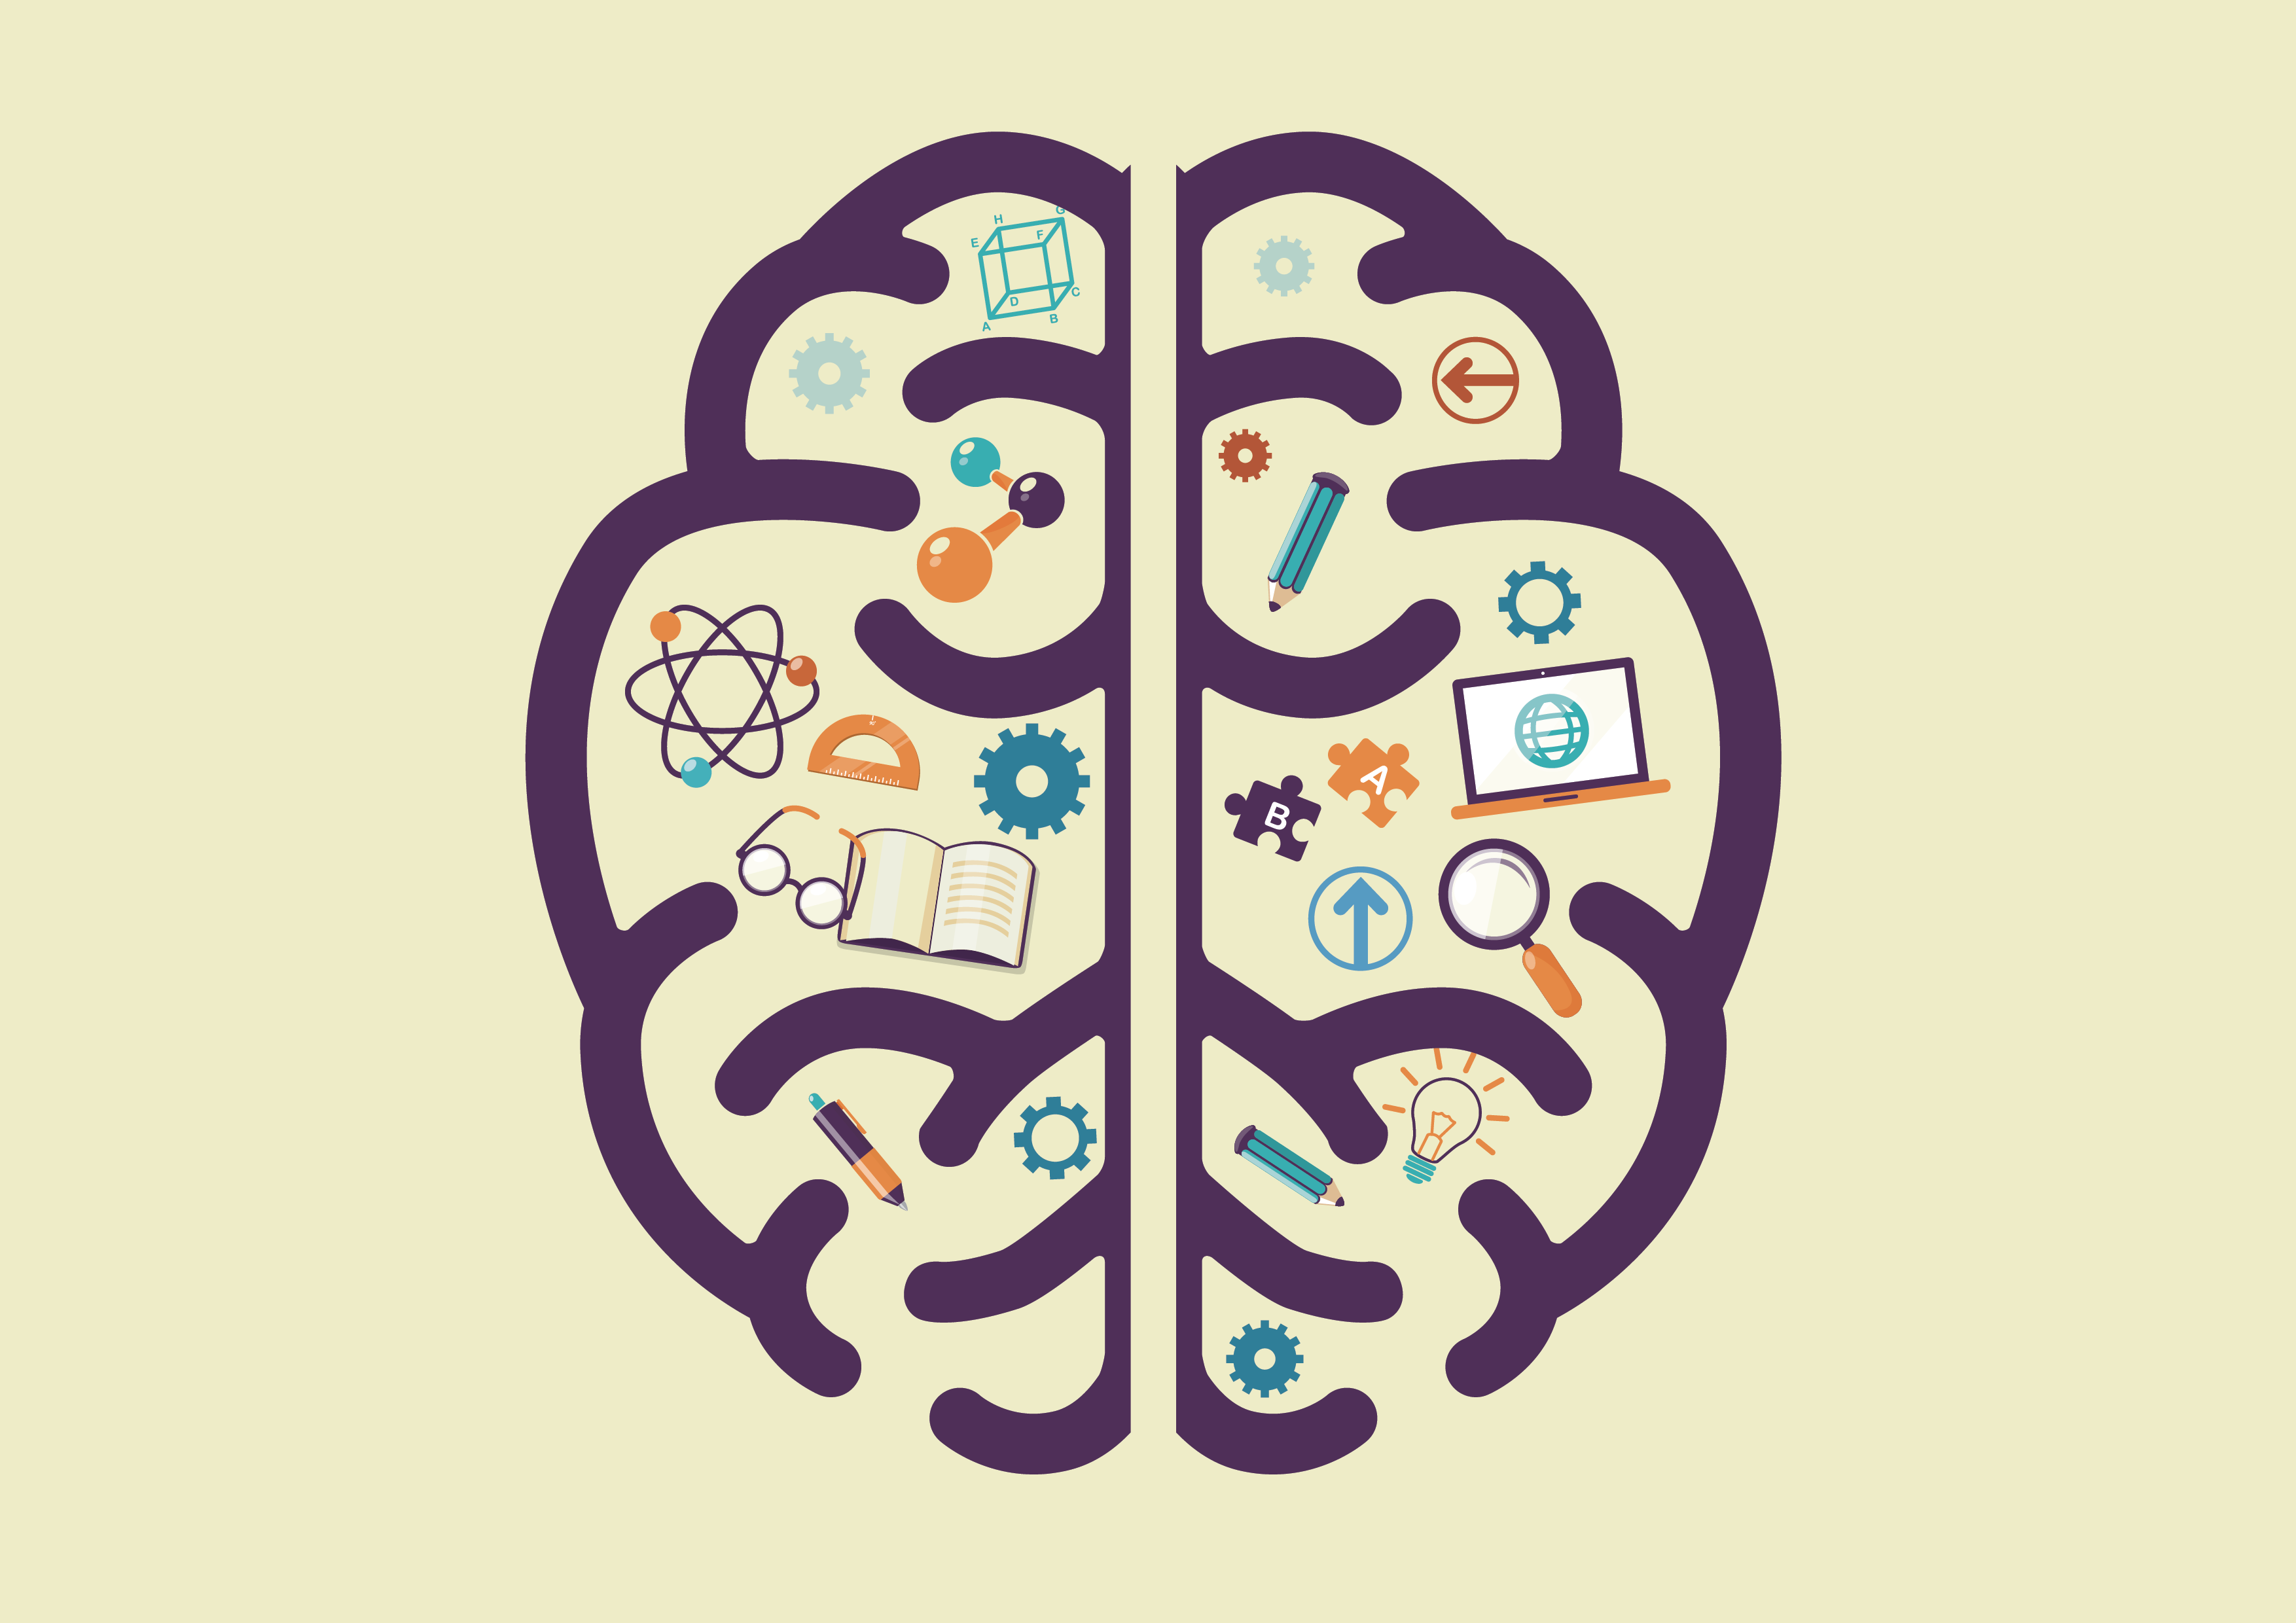 A 2-D, overhead view of a cartoon brain appears on a beige background. Inside the brain, there are symbols for various objects (including molecules, glasses, a book, puzzle pieces, a laptop, and more)